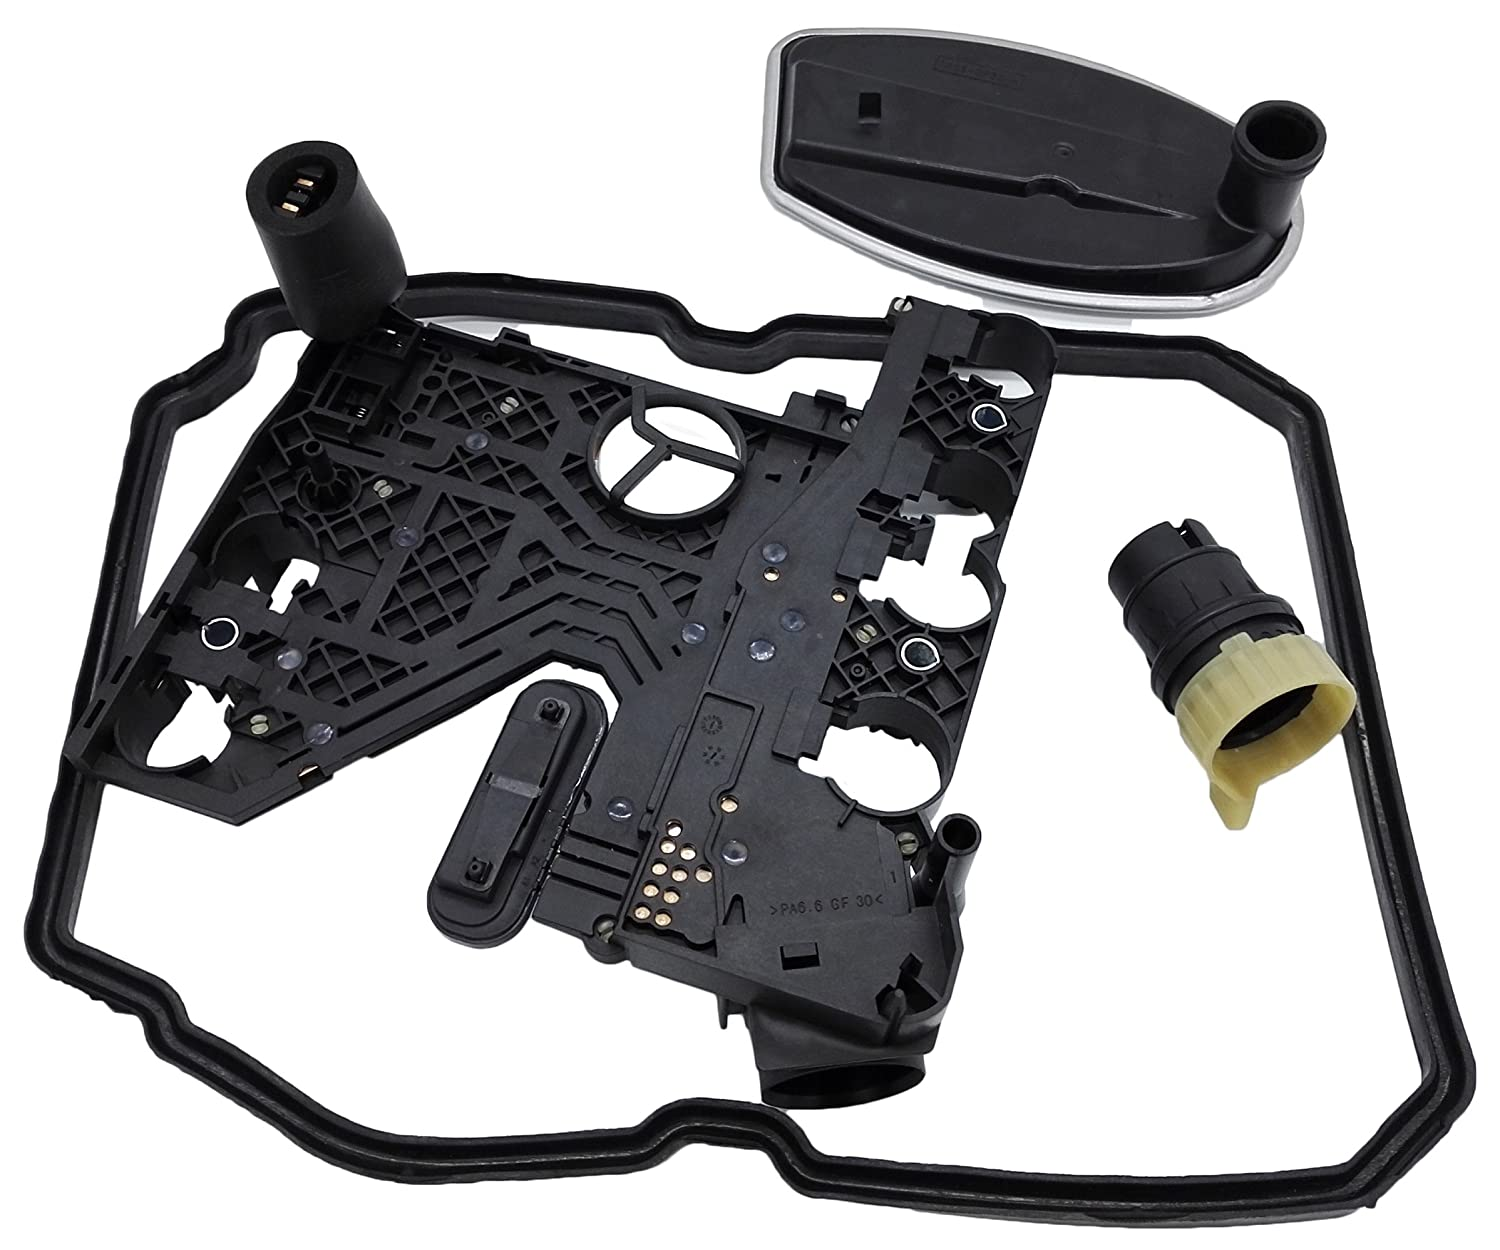 Transmission Conductor Plate Kit with Connector Filter Gasket for Mercedes 722.6 5-Speed Automatic